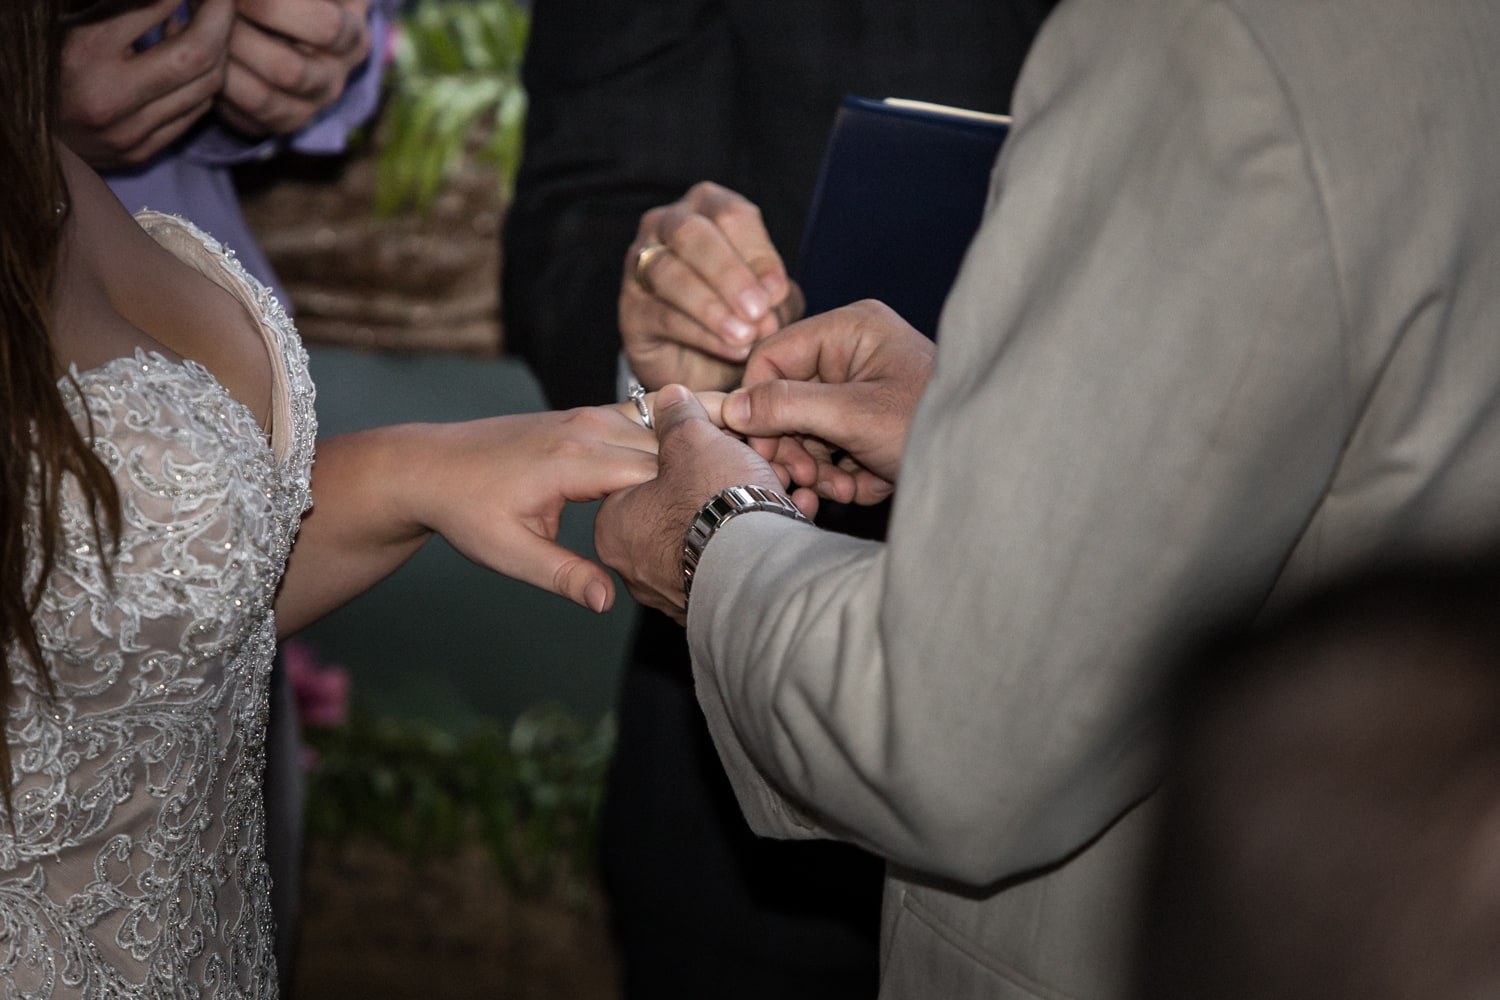 Bride and groom exchange wedding rings after saying vows.